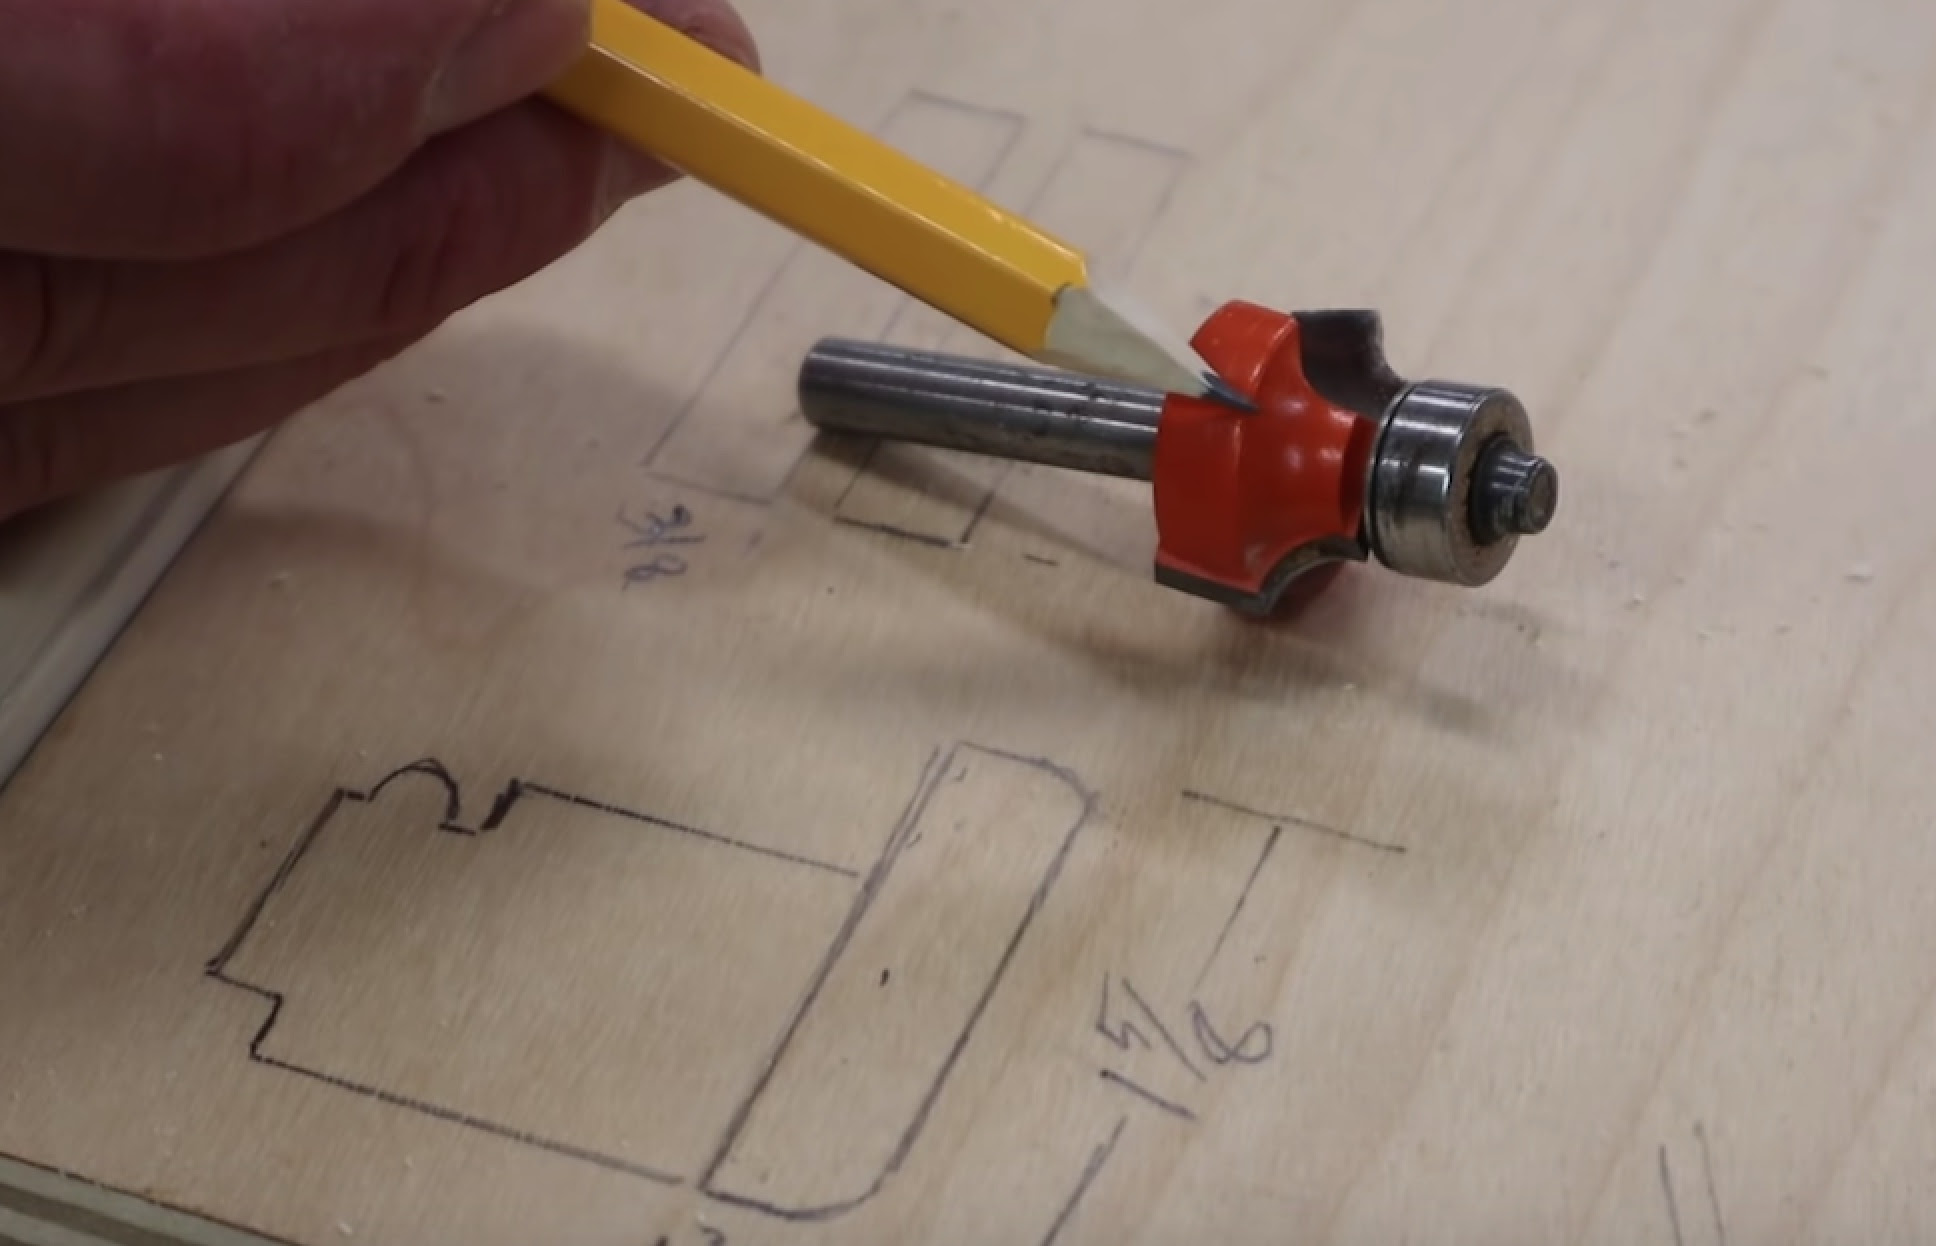 How To Make Molding With A Router Build A Picture Frame Free